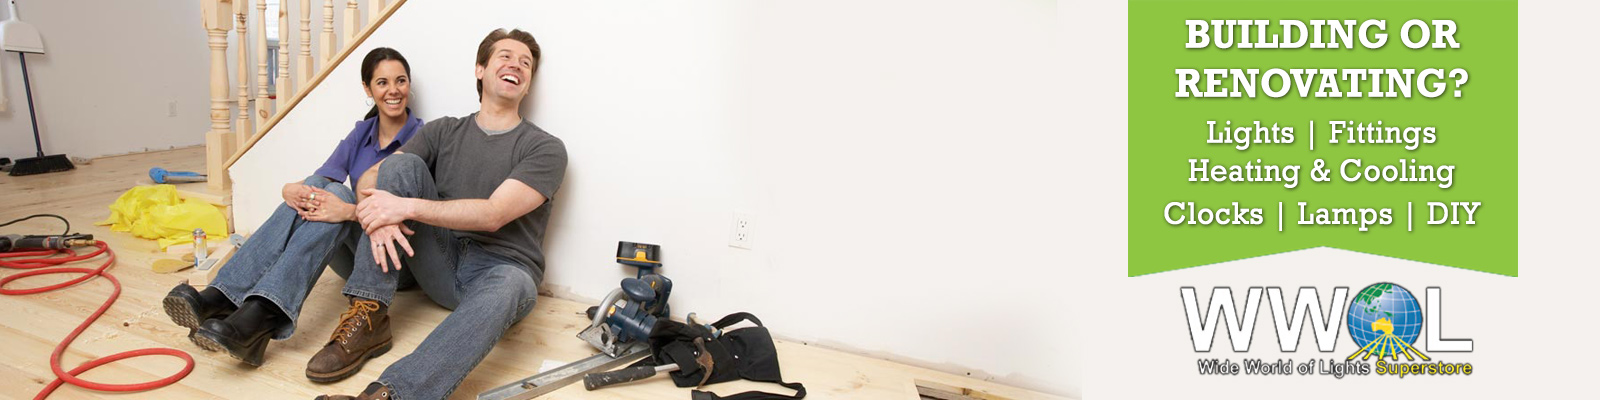 BUILDING OR RENOVATING WWOL HAS YOU COVERED